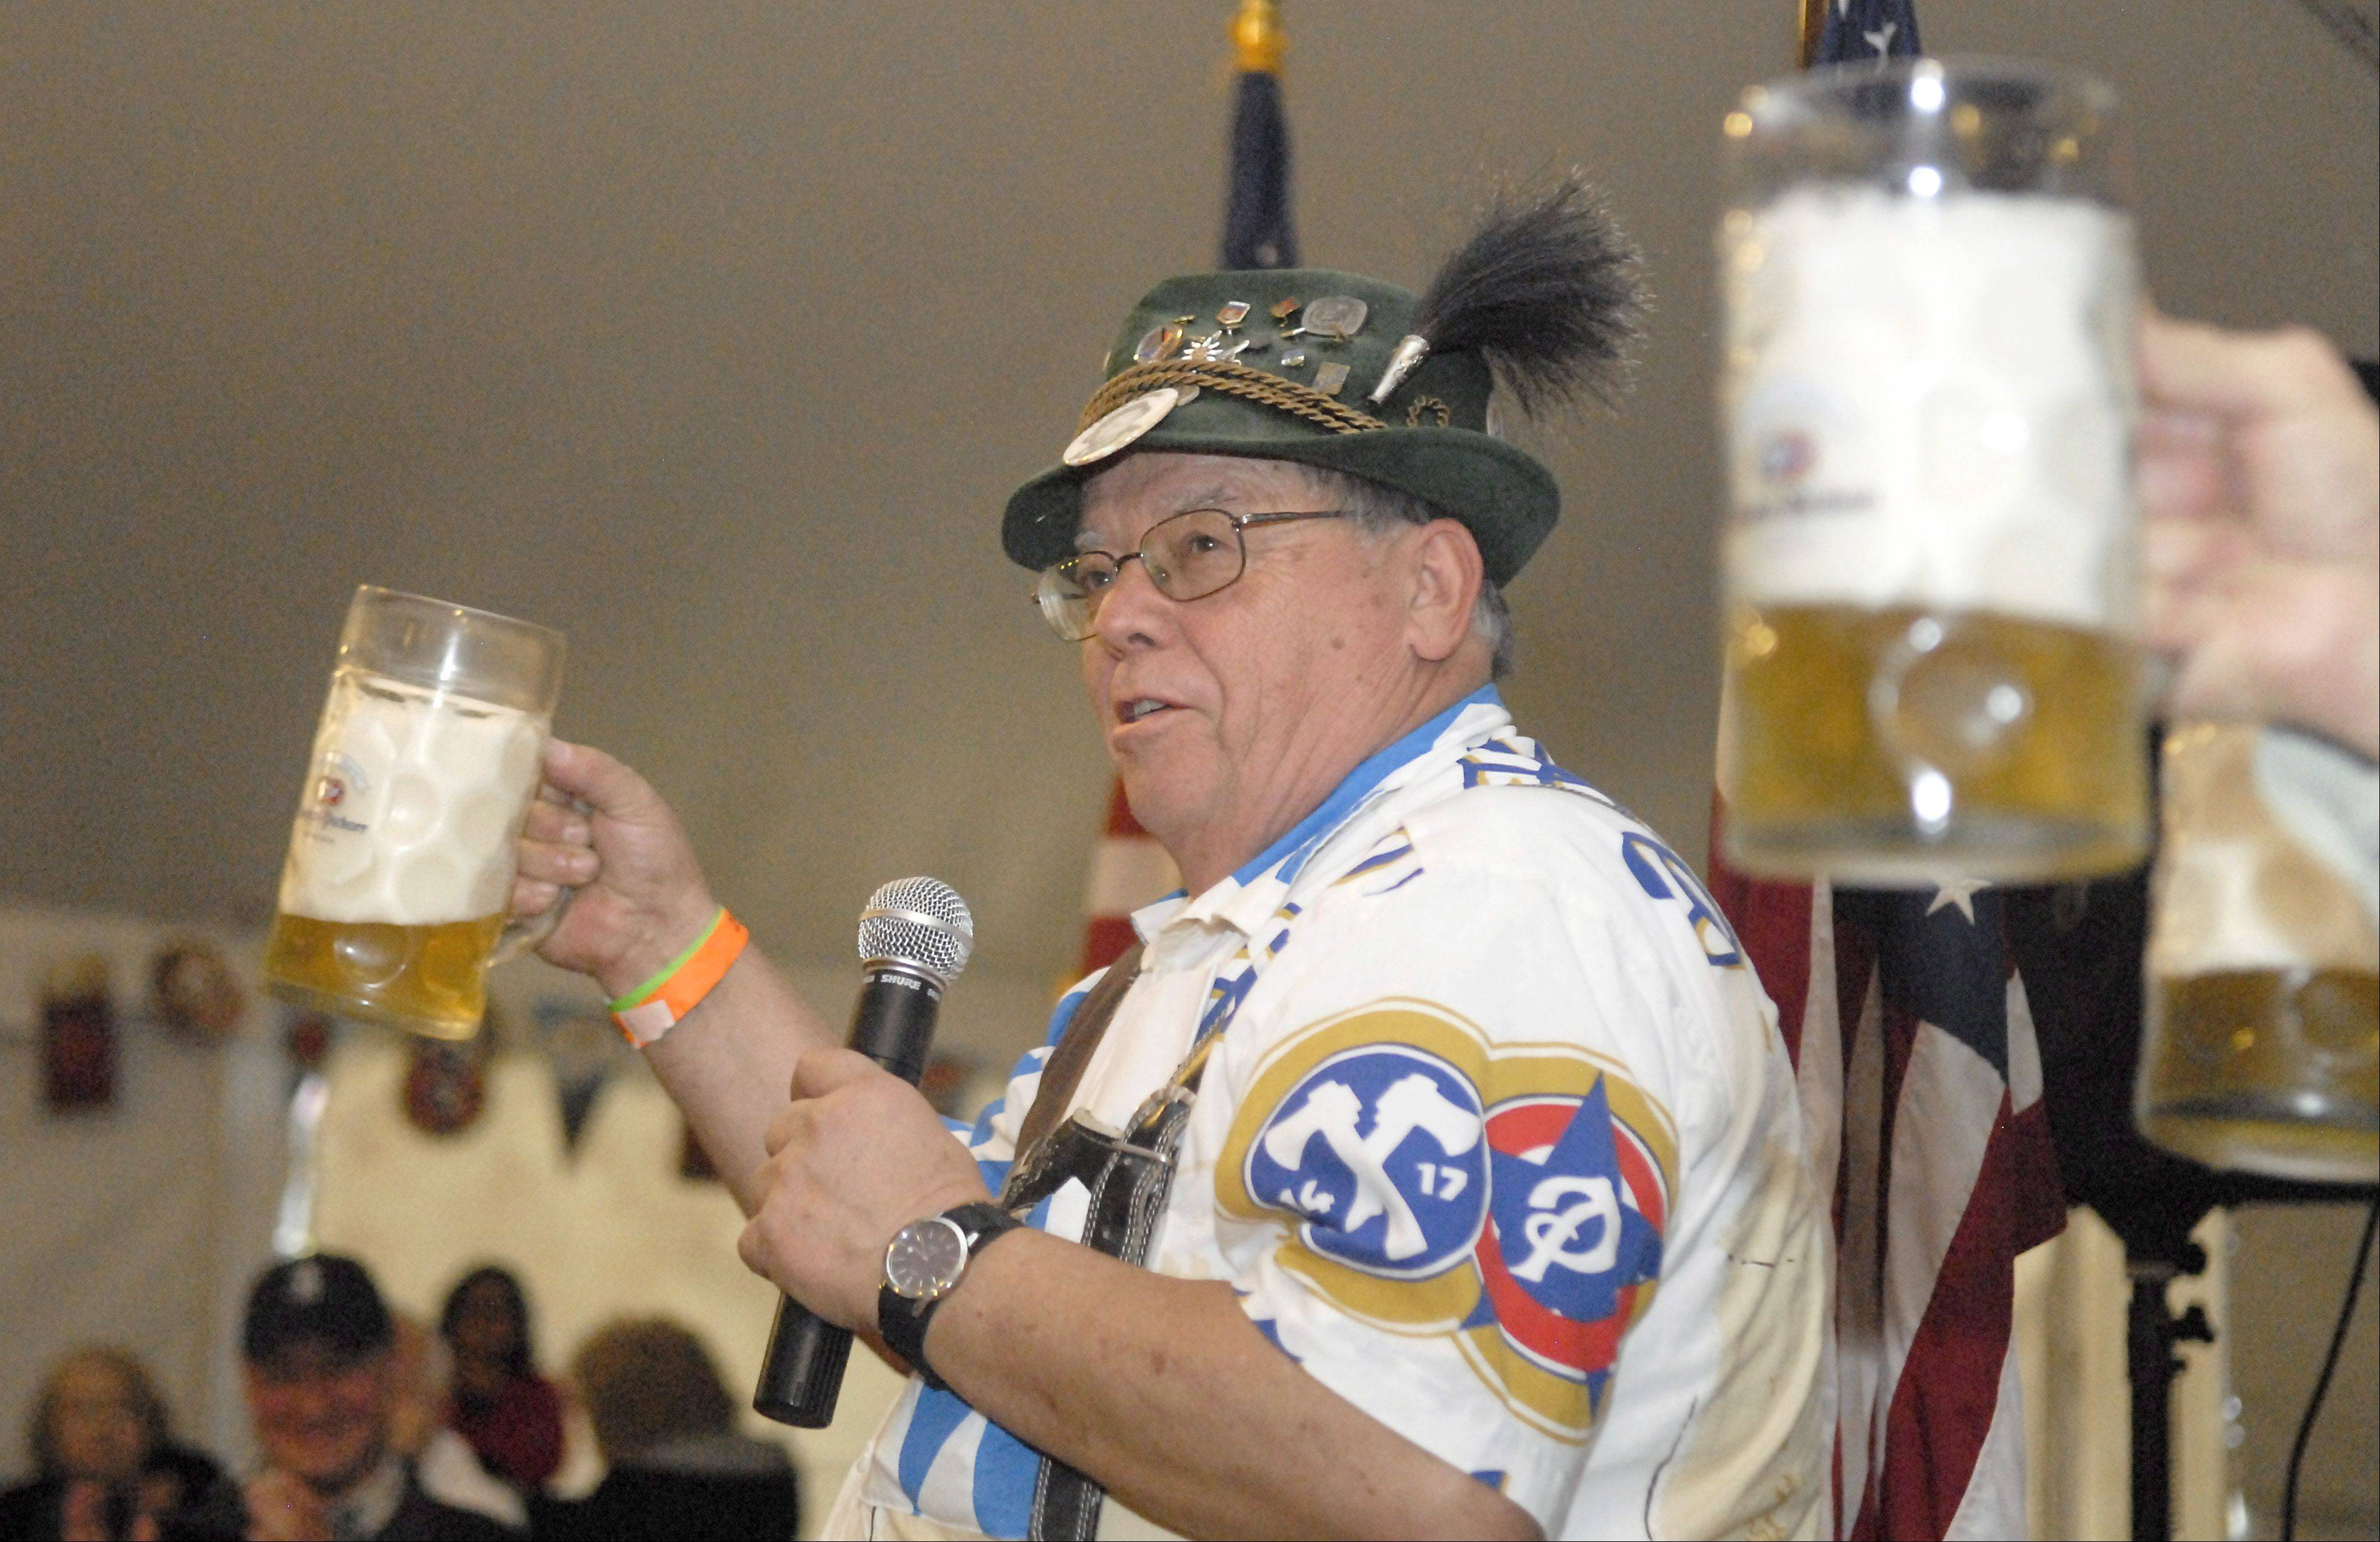 DANK Fox Valley President Willi Gohs holds up a stein of beer and toasts the crowd during the opening ceremony Saturday of the 10th annual Fox Valley Oktoberfest in downtown Batavia. A small barrel of beer flown directly from Germany was ceremonially tapped to officially start the celebration.